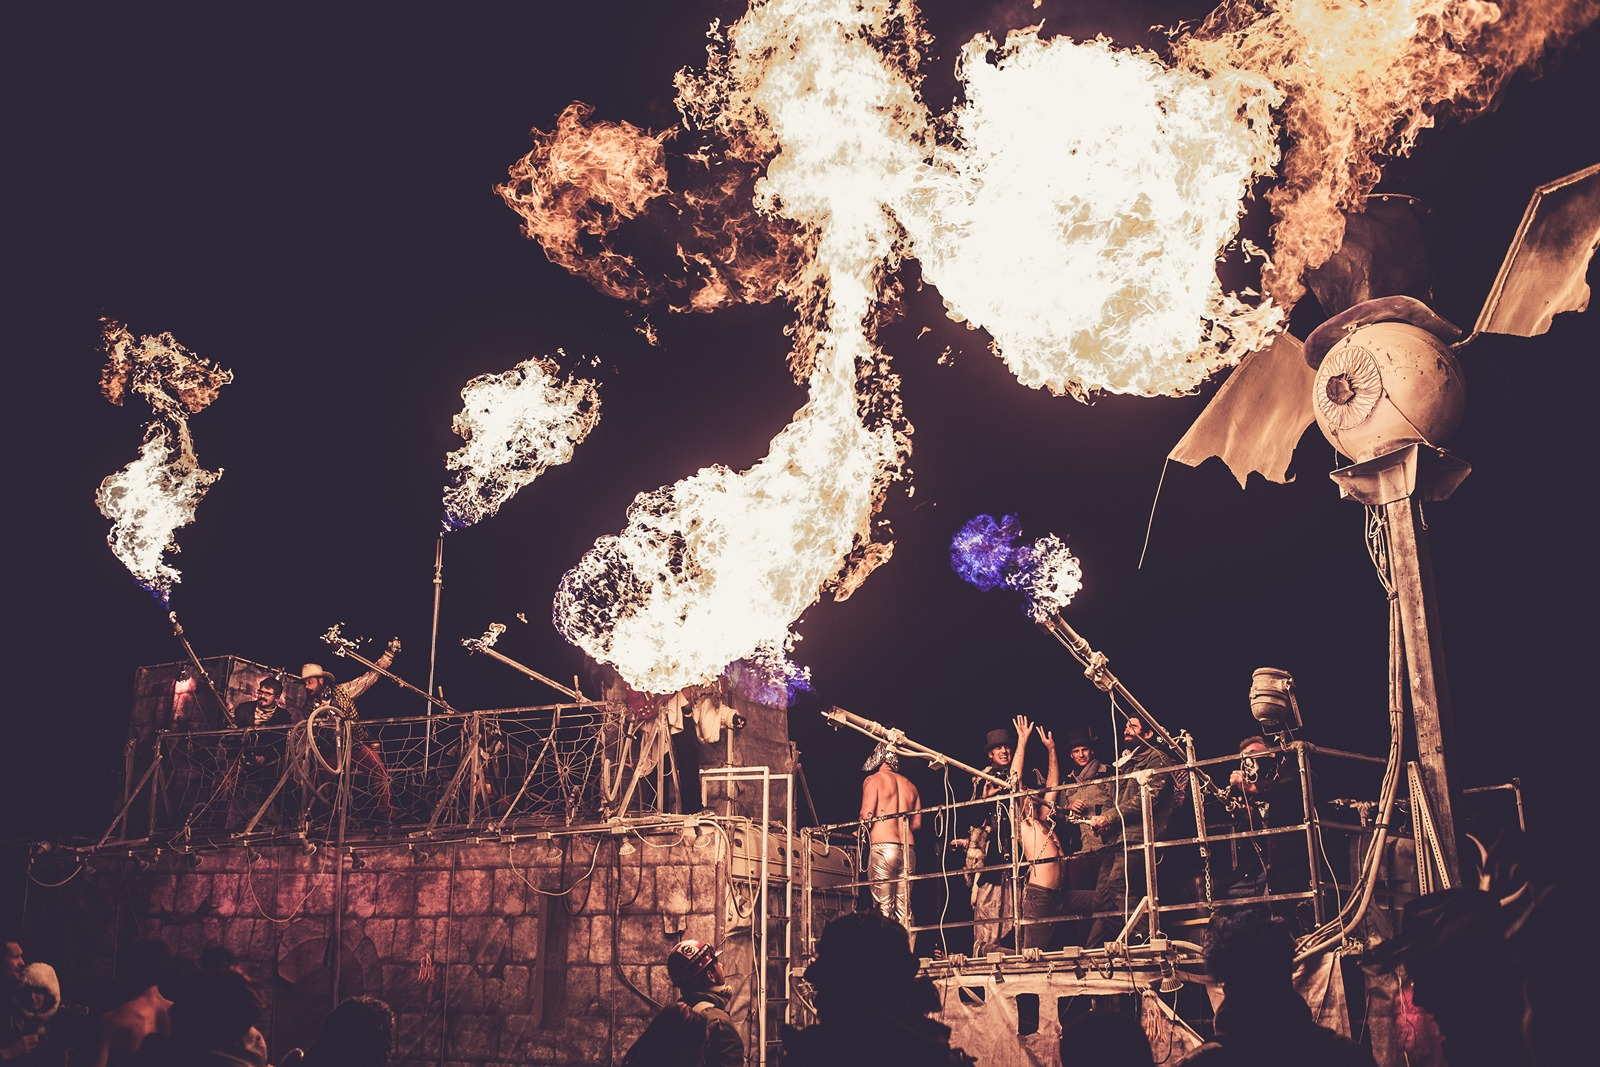 Burning Man - Playing with fire